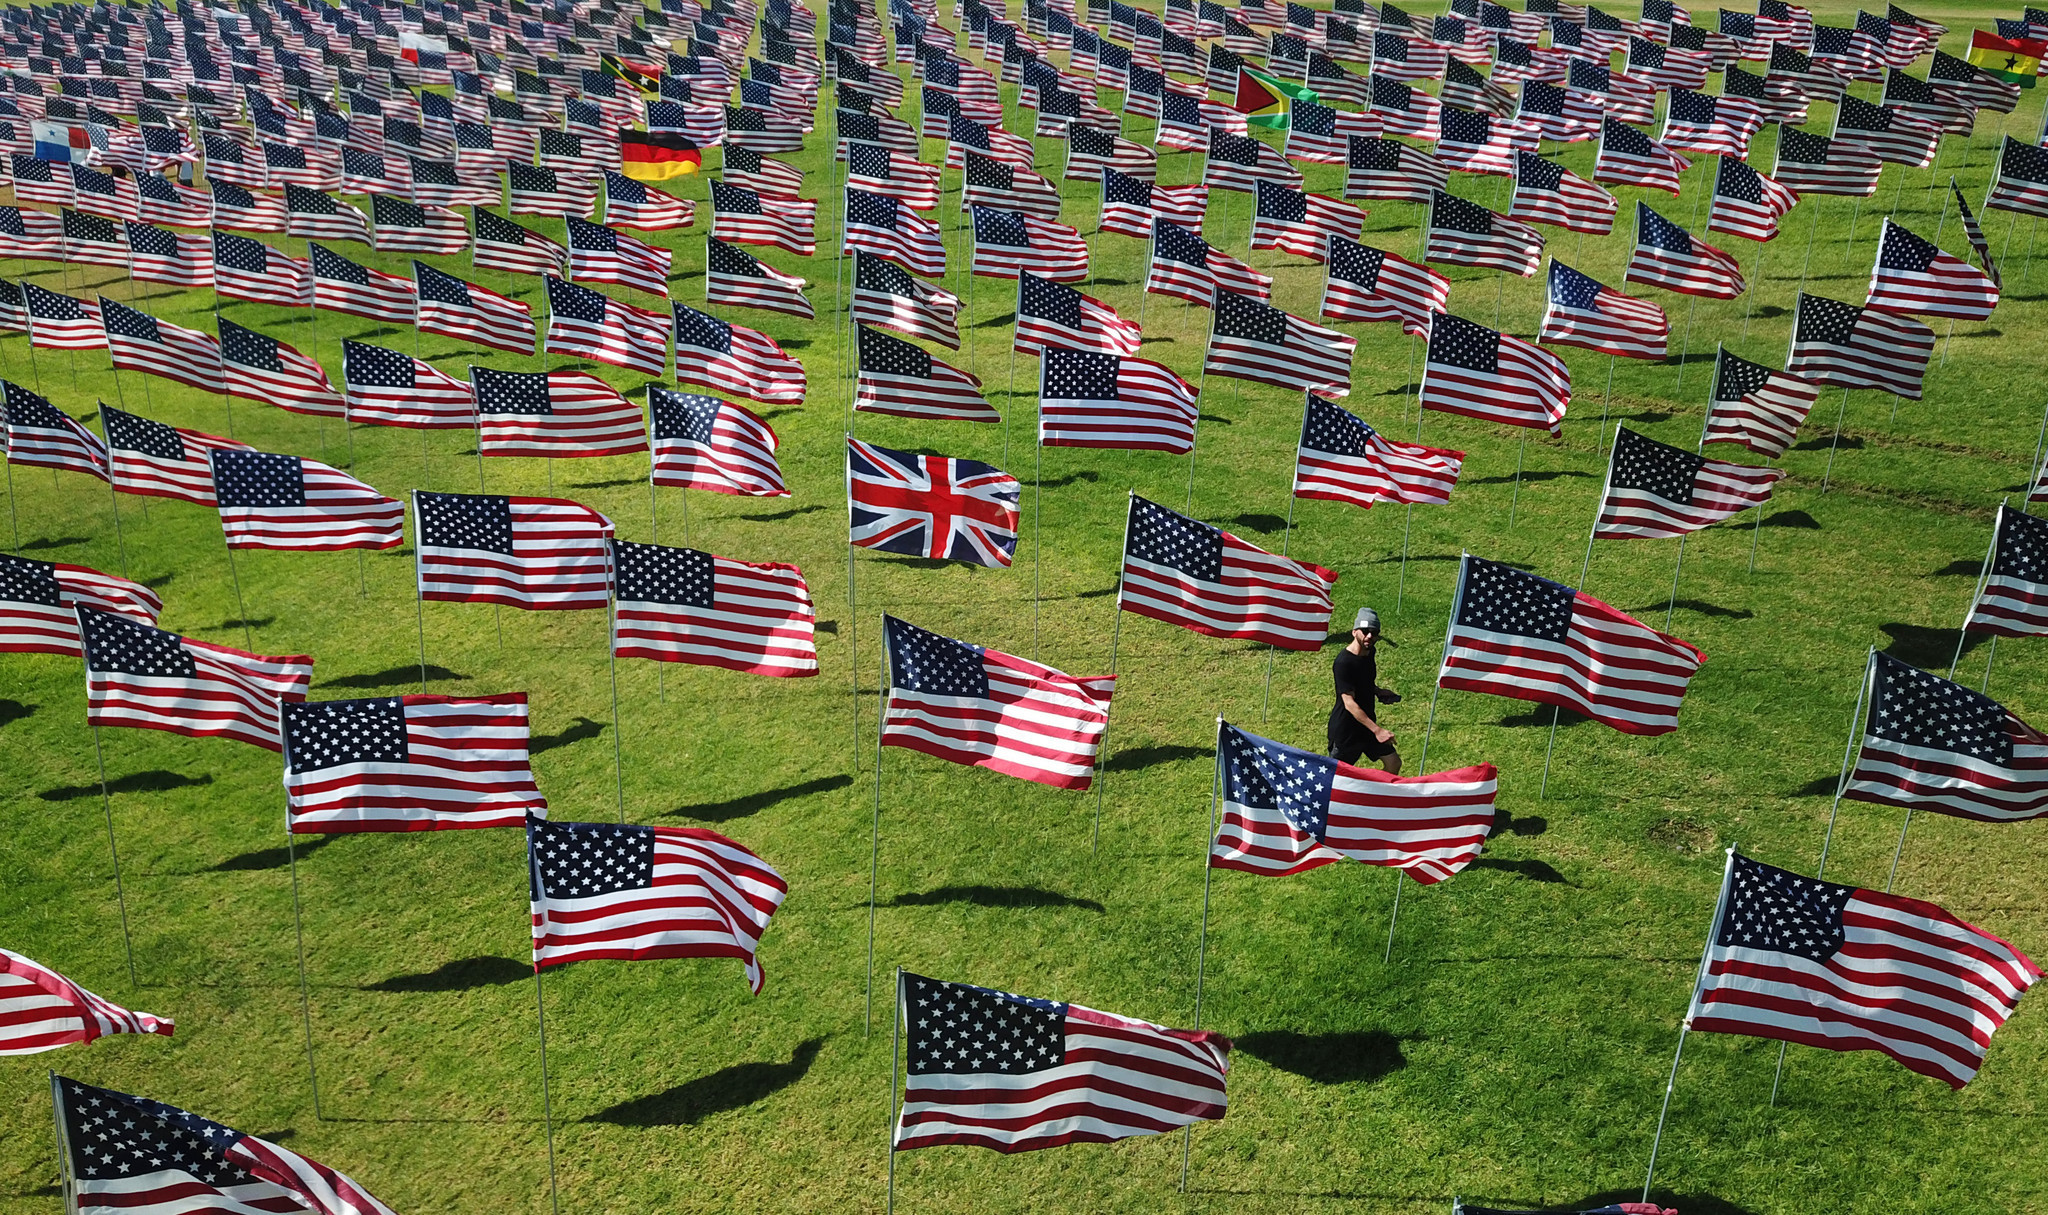 lawn of the 2,977 flags,—2,887 American flags for each American life lost and 90 international flags representing the home countries of individuals from abroad who died in the